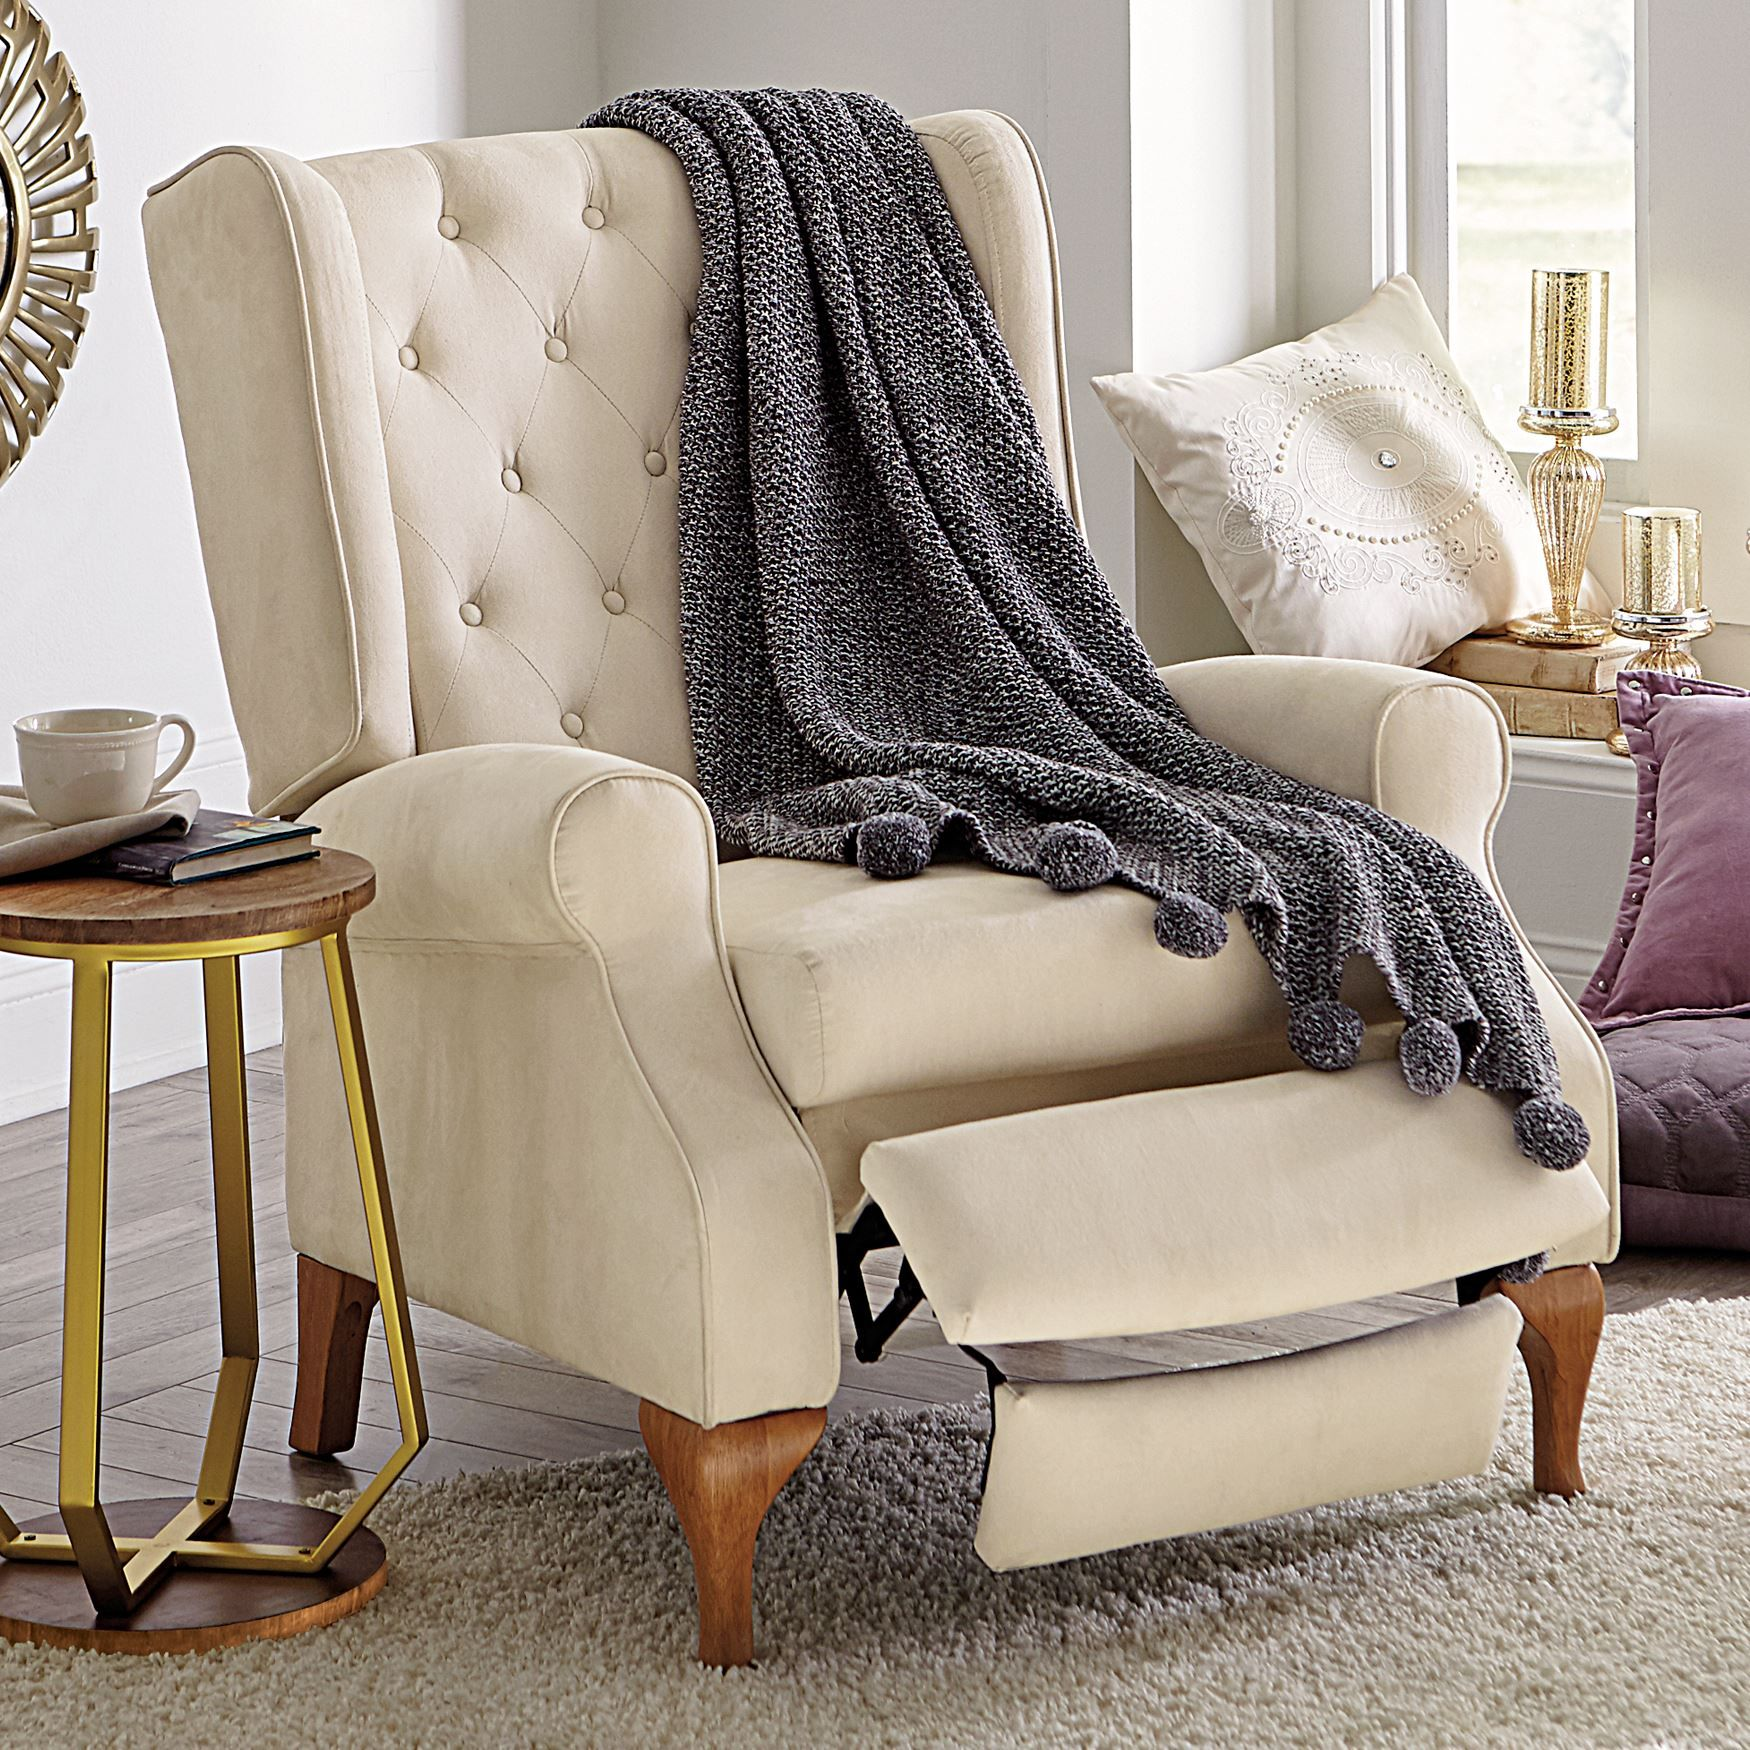 Wingback Recliner Chair Our Beautifully Crafted Queen Anne Style Tufted Wingback Recliner